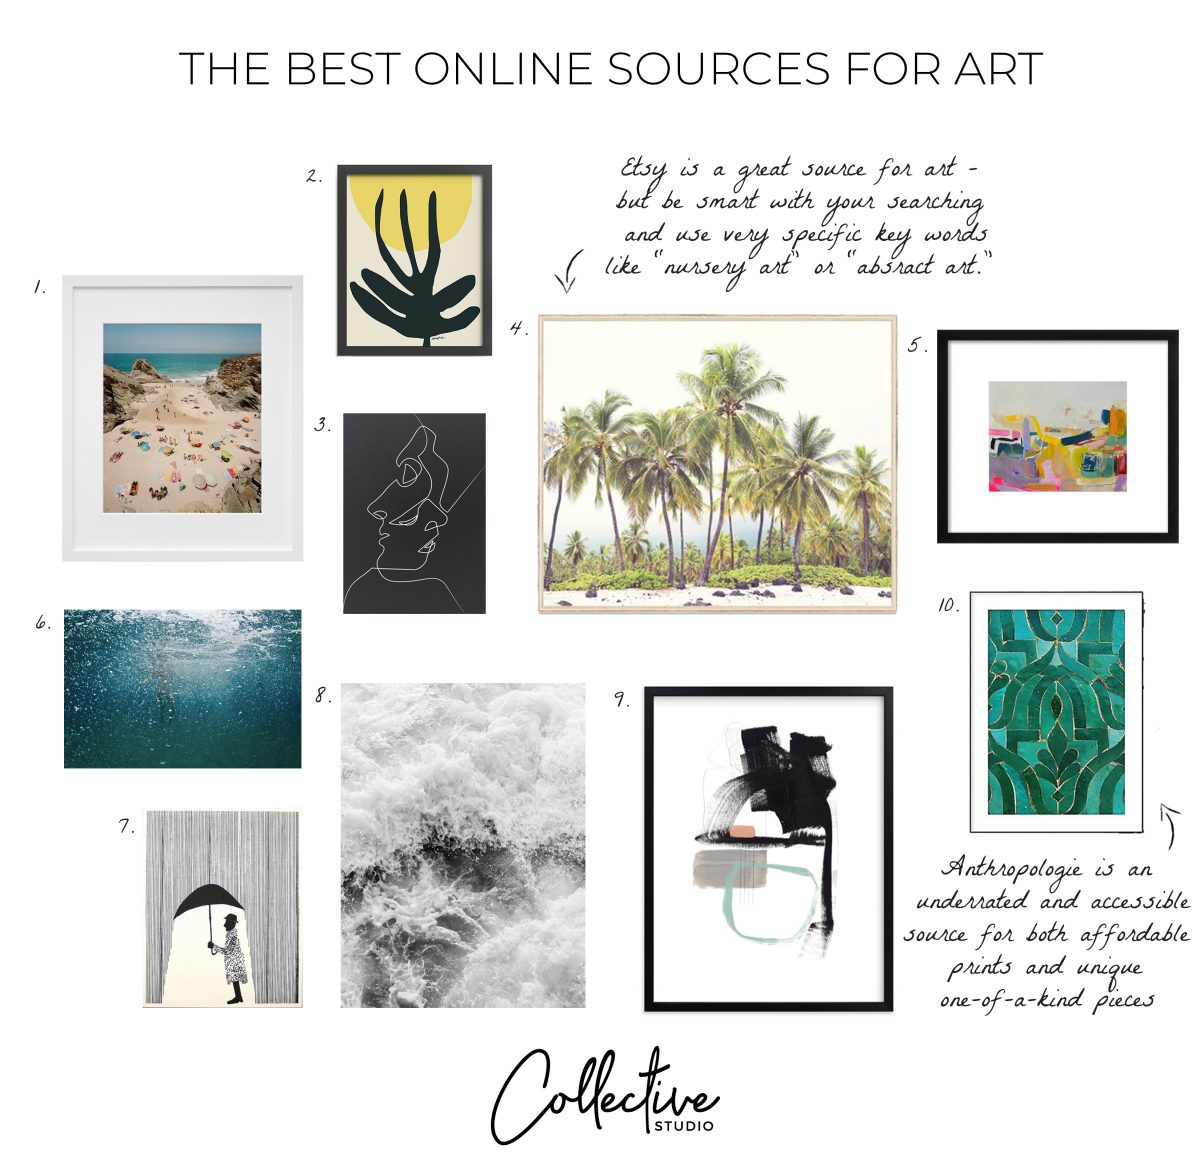 10 Things: The Best Online Sources for Art